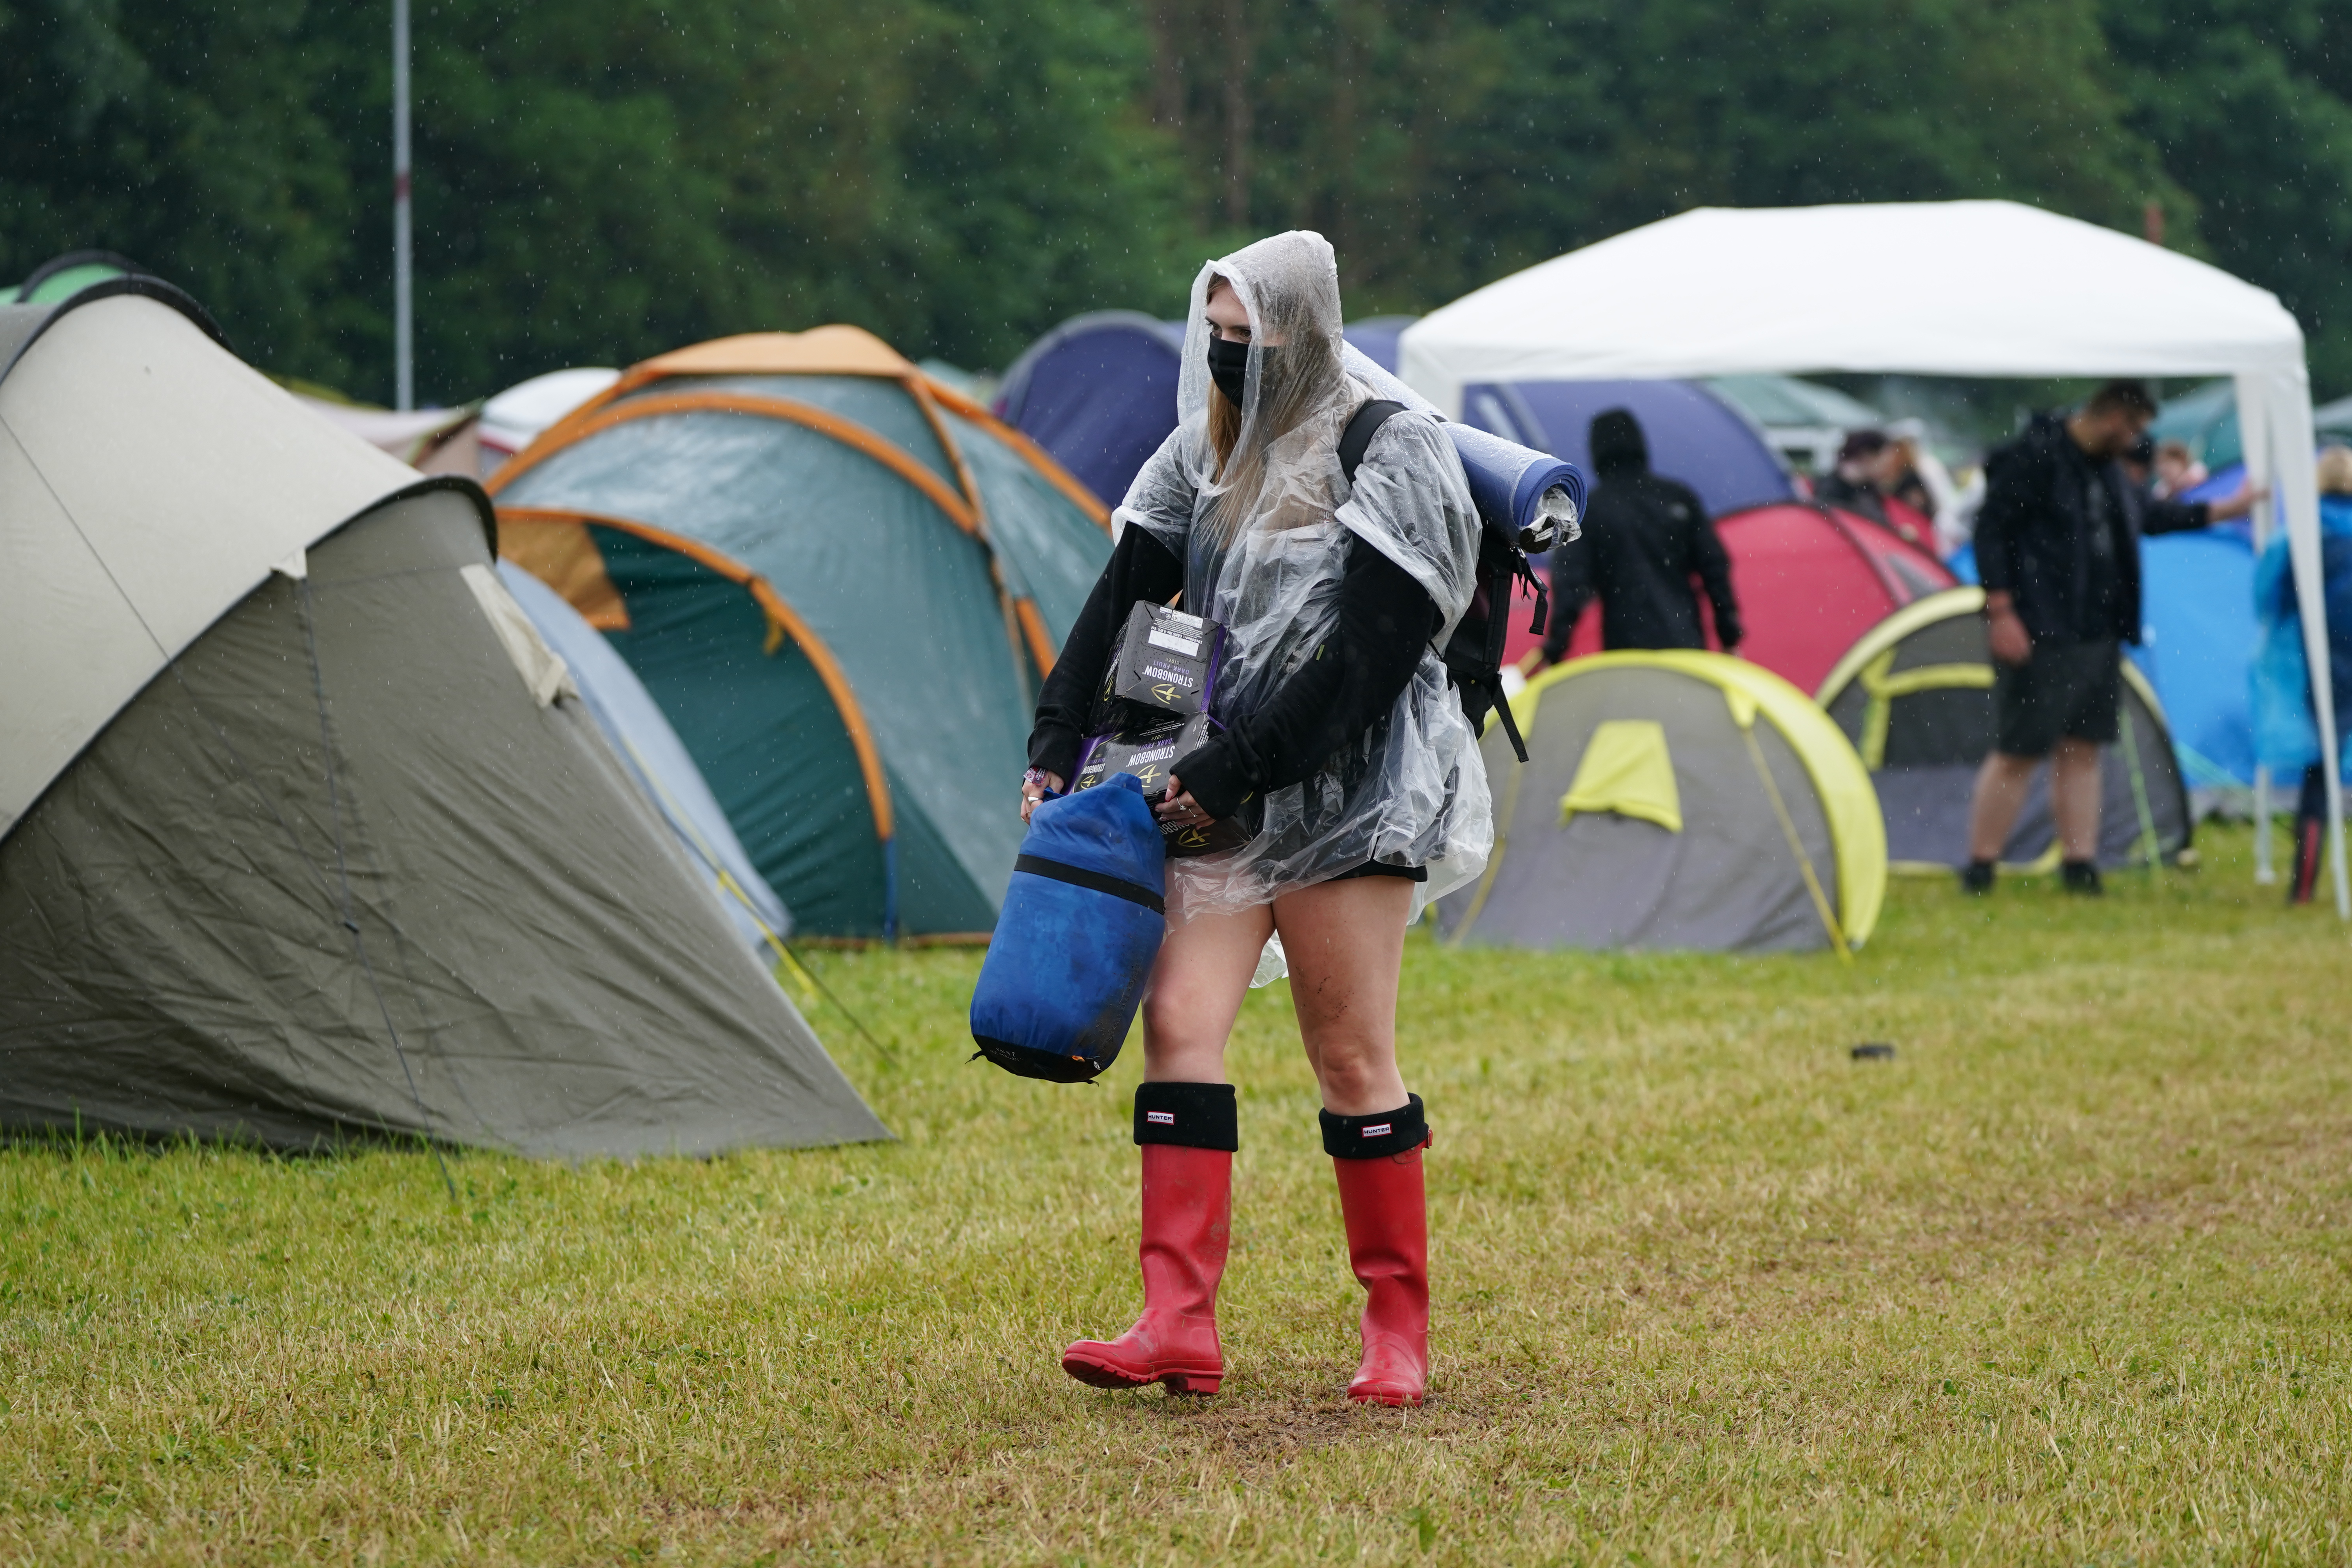 <p>A festivalgoer arrives on the first day of Download Festival at Donington Park in Leicestershire. Picture date: Friday June 18, 2021.</p>